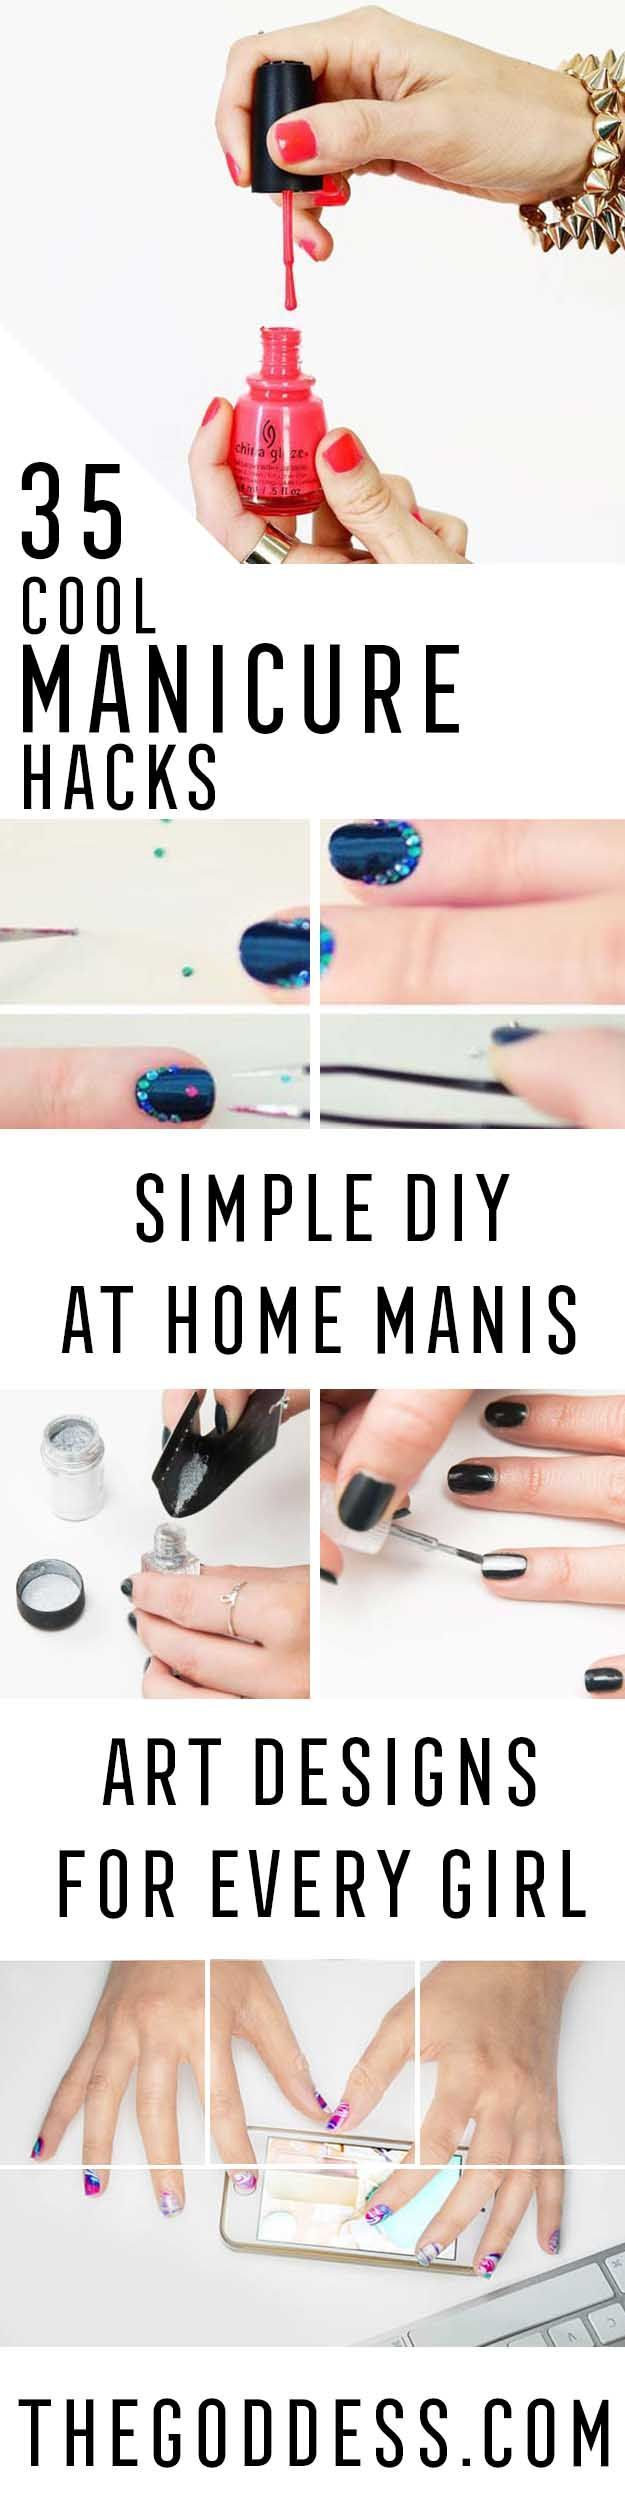 The 19 best Nails Tips & Tricks images on Pinterest | Beauty tips ...